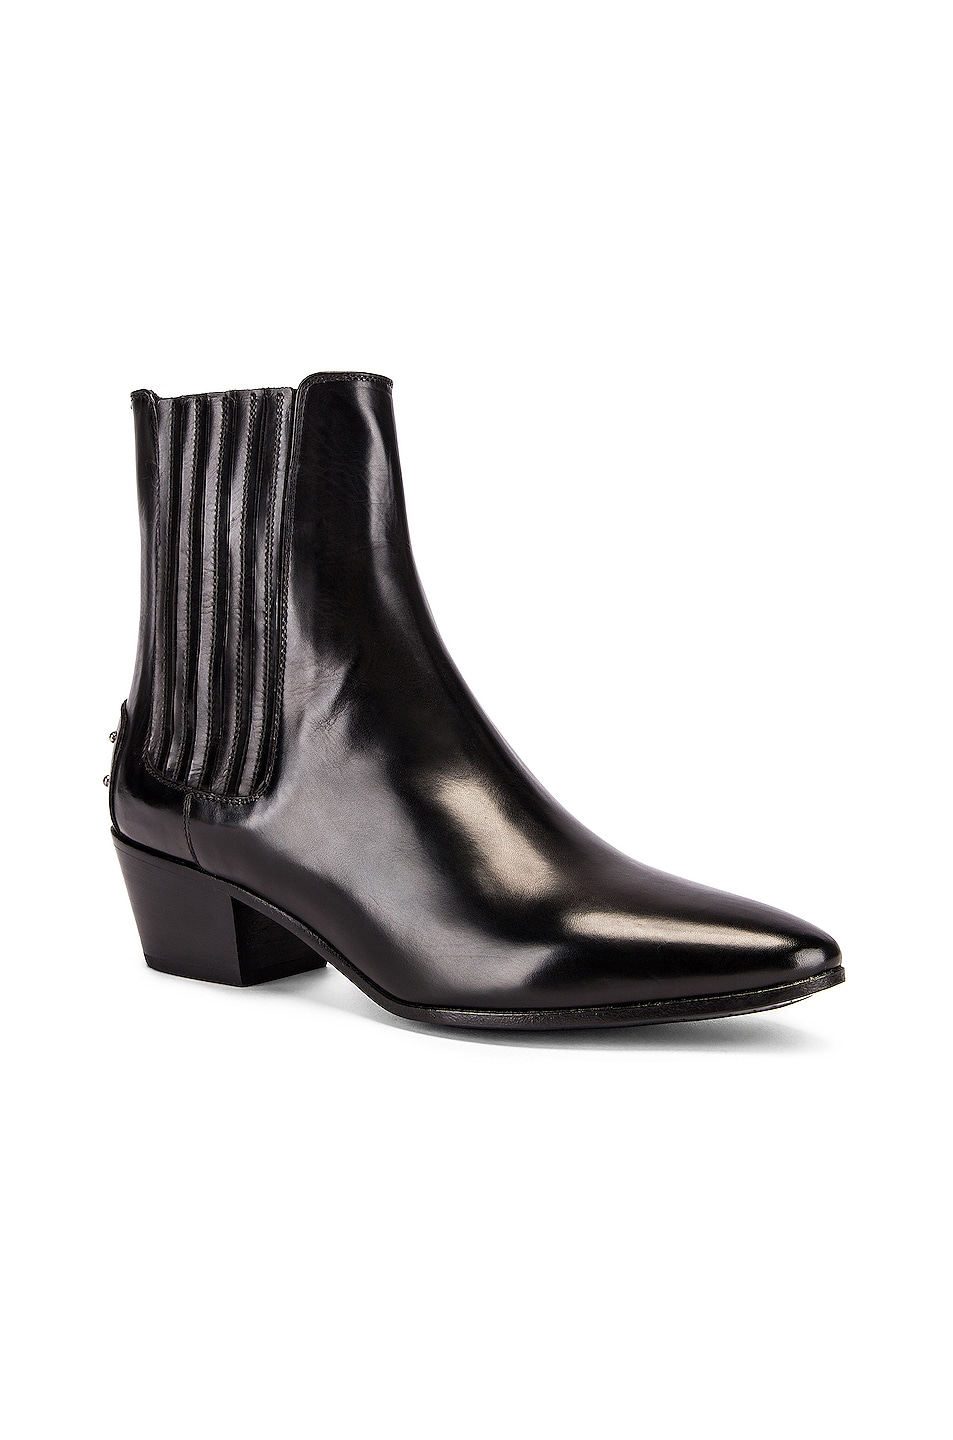 Image 2 of Saint Laurent West Leather Chelsea Boots in Black